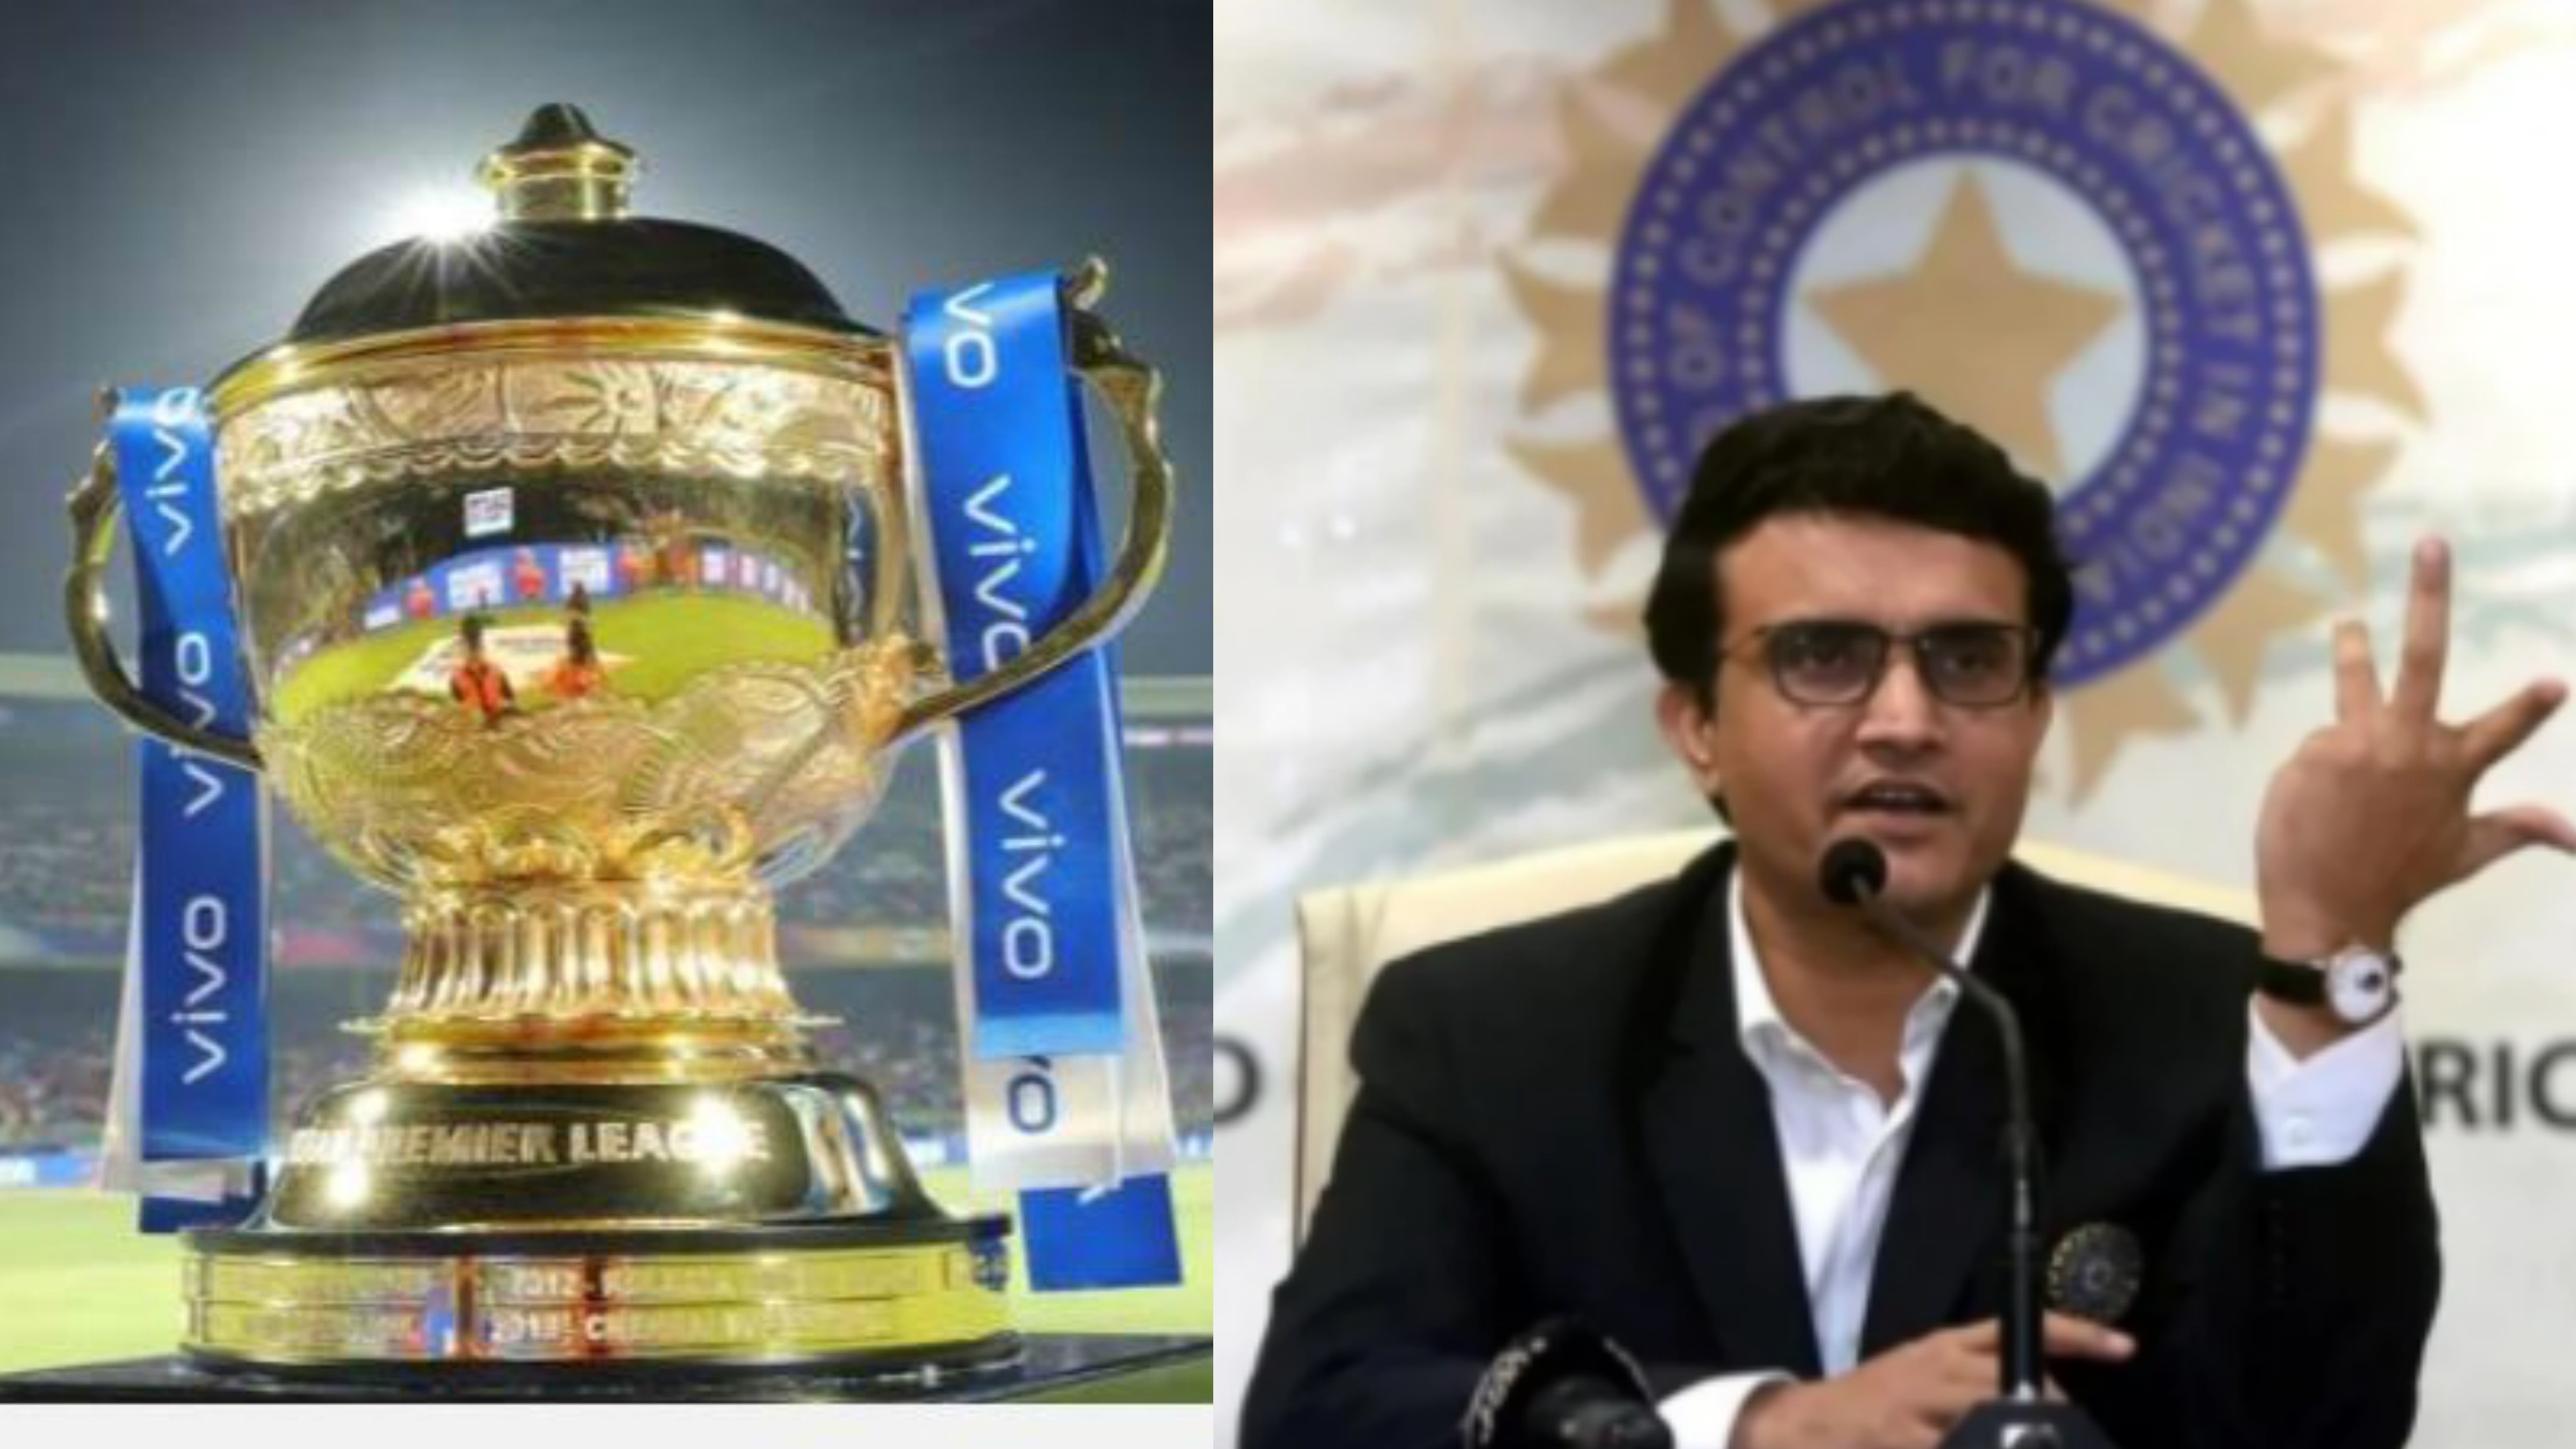 IPL 2020: Spot-Fixing case petitioner asks BCCI President Sourav Ganguly to host IPL in India